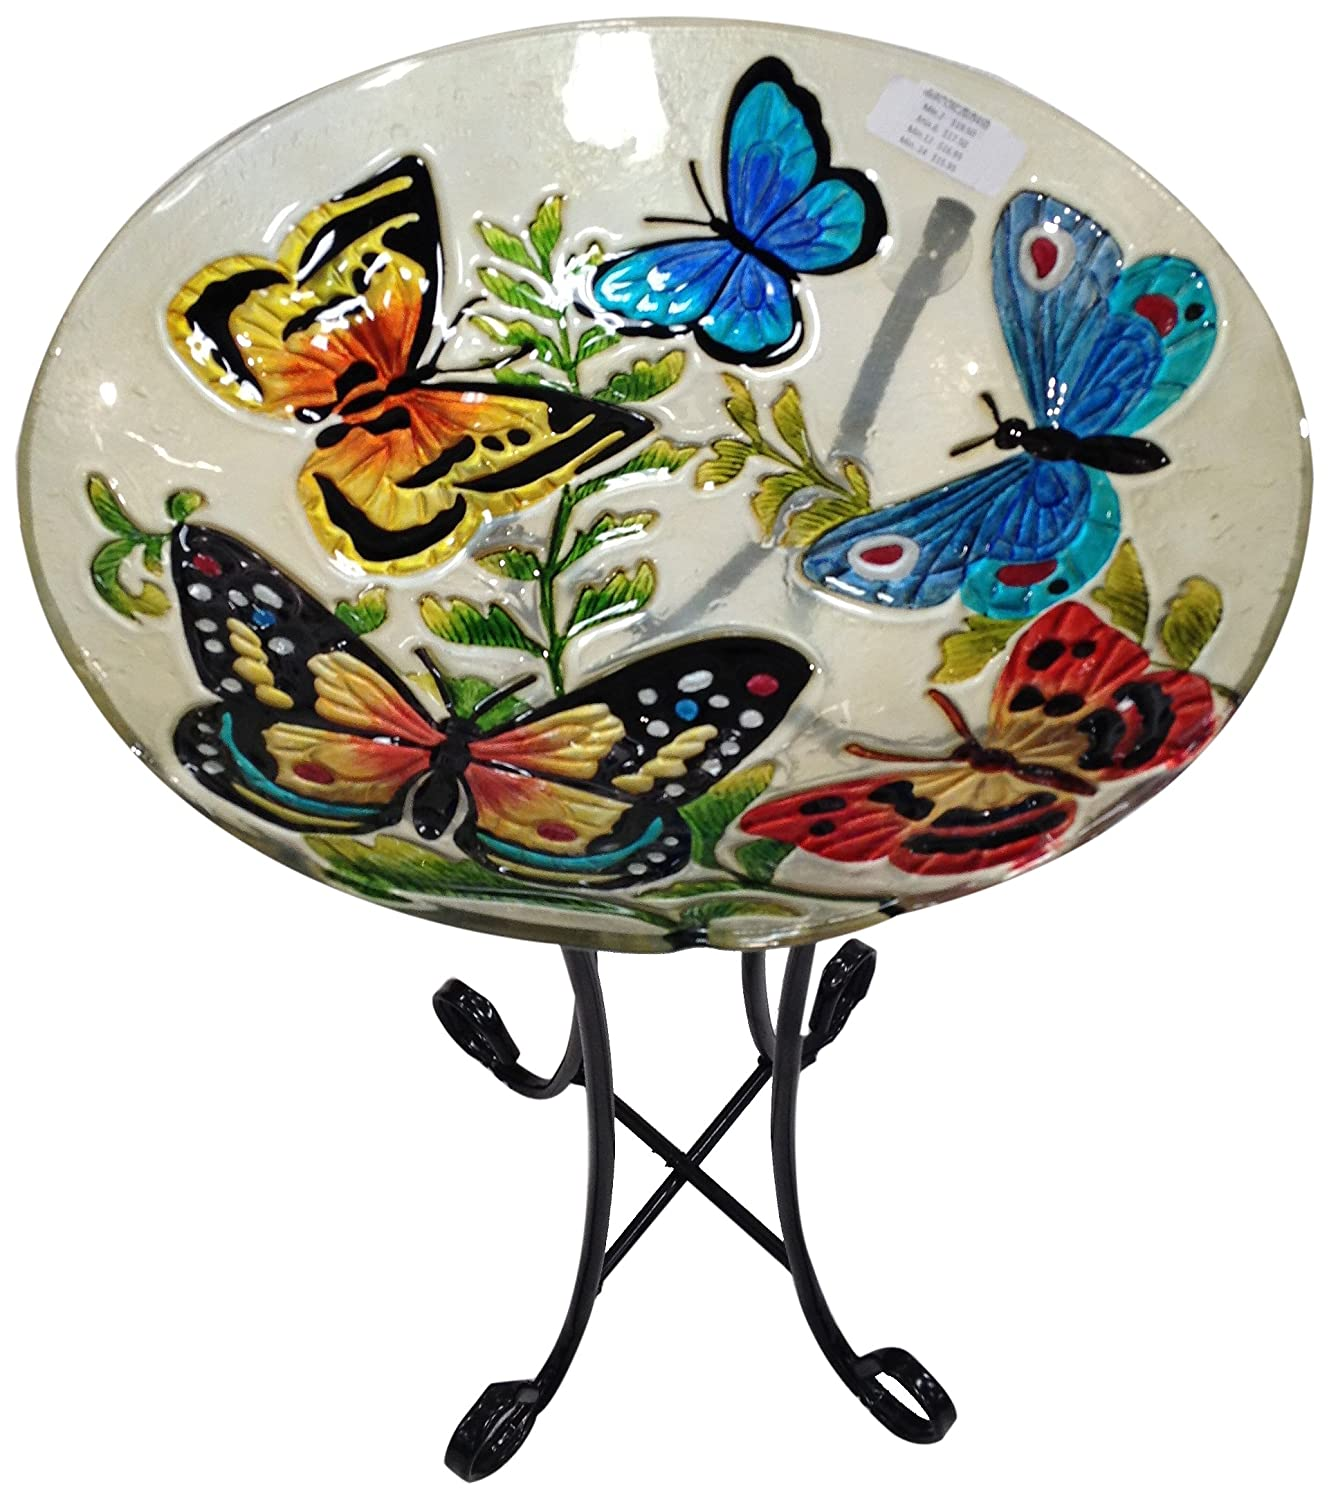 Continental Art Centre CAC2609450 Deep Hand Painted Glass Plate, 46cm by 7.6cm, Butterflies